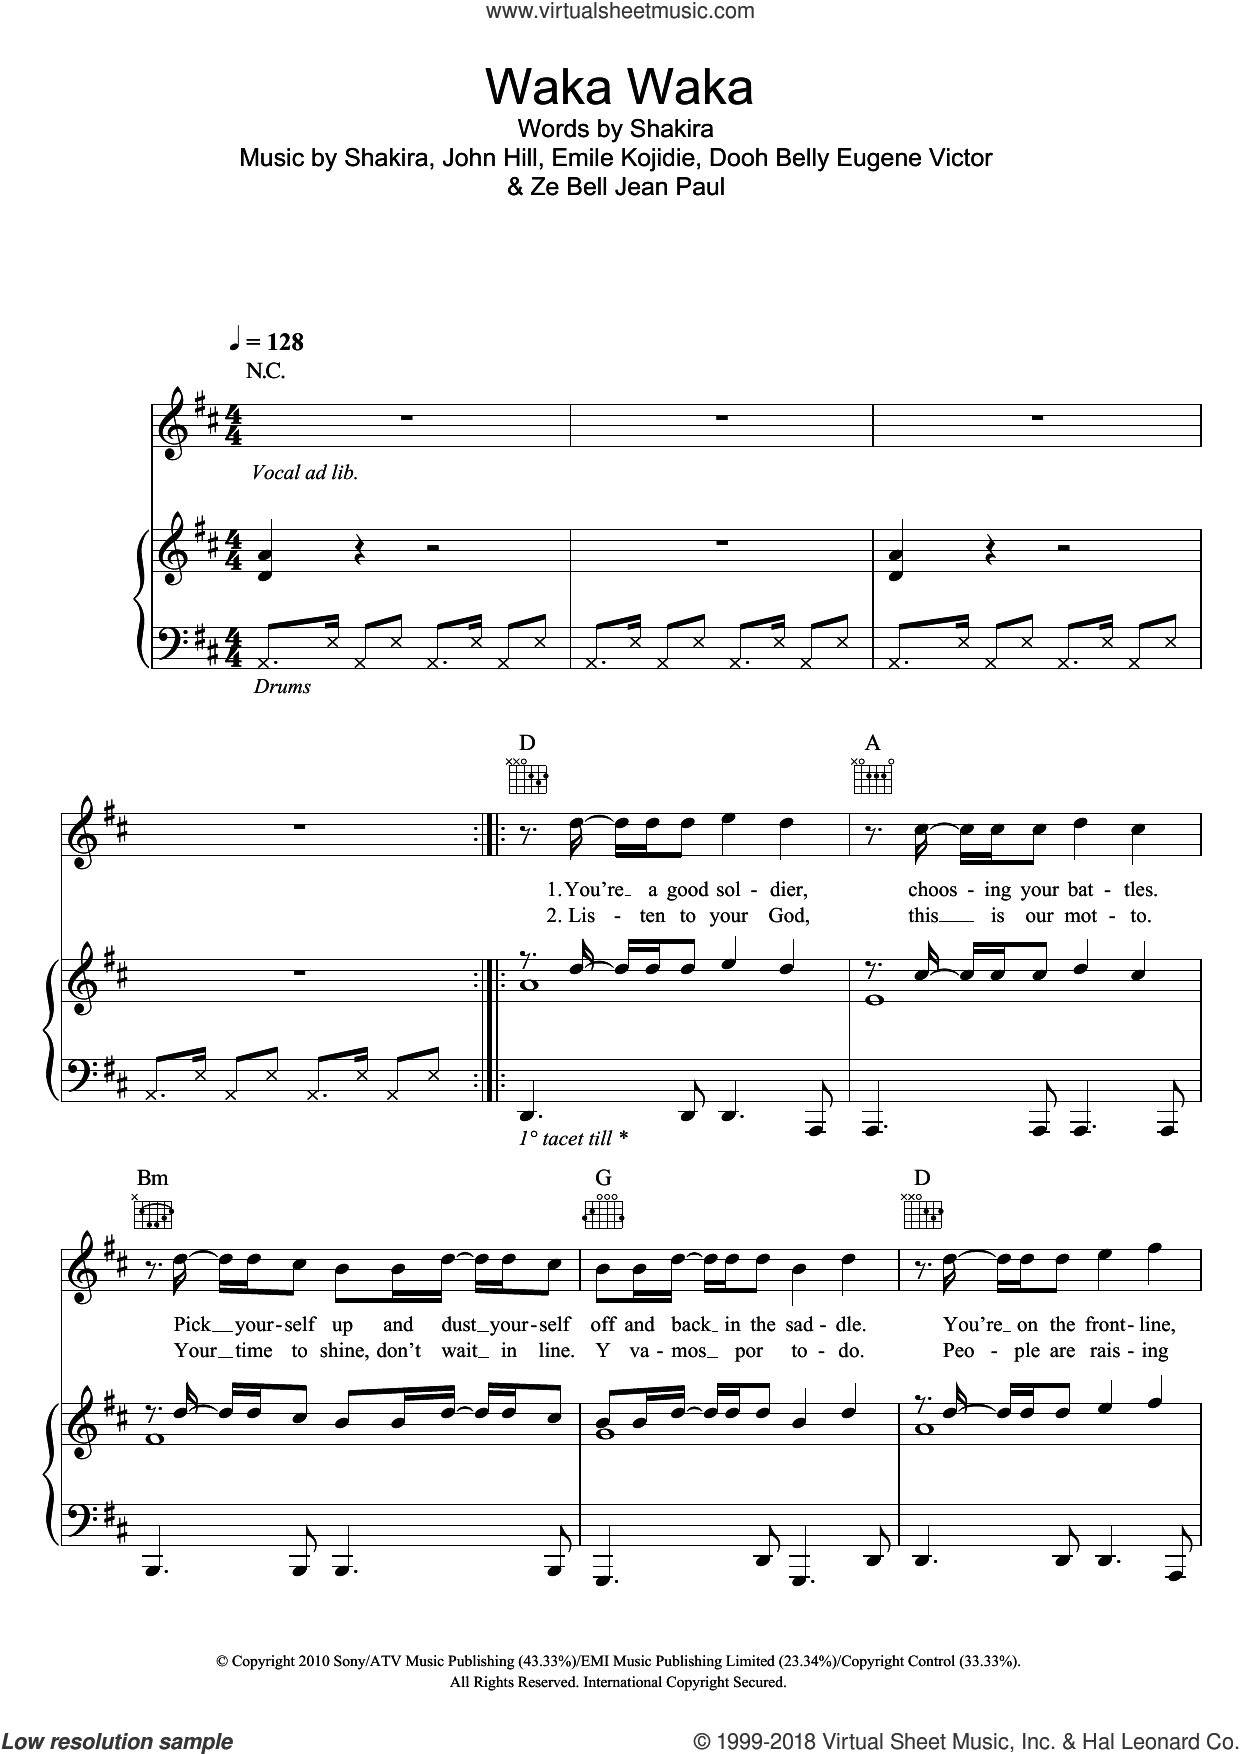 Waka Waka (This Time For Africa) (2010 FIFA World Cup Song) sheet music for voice, piano or guitar by Ze Bell Jean Paul